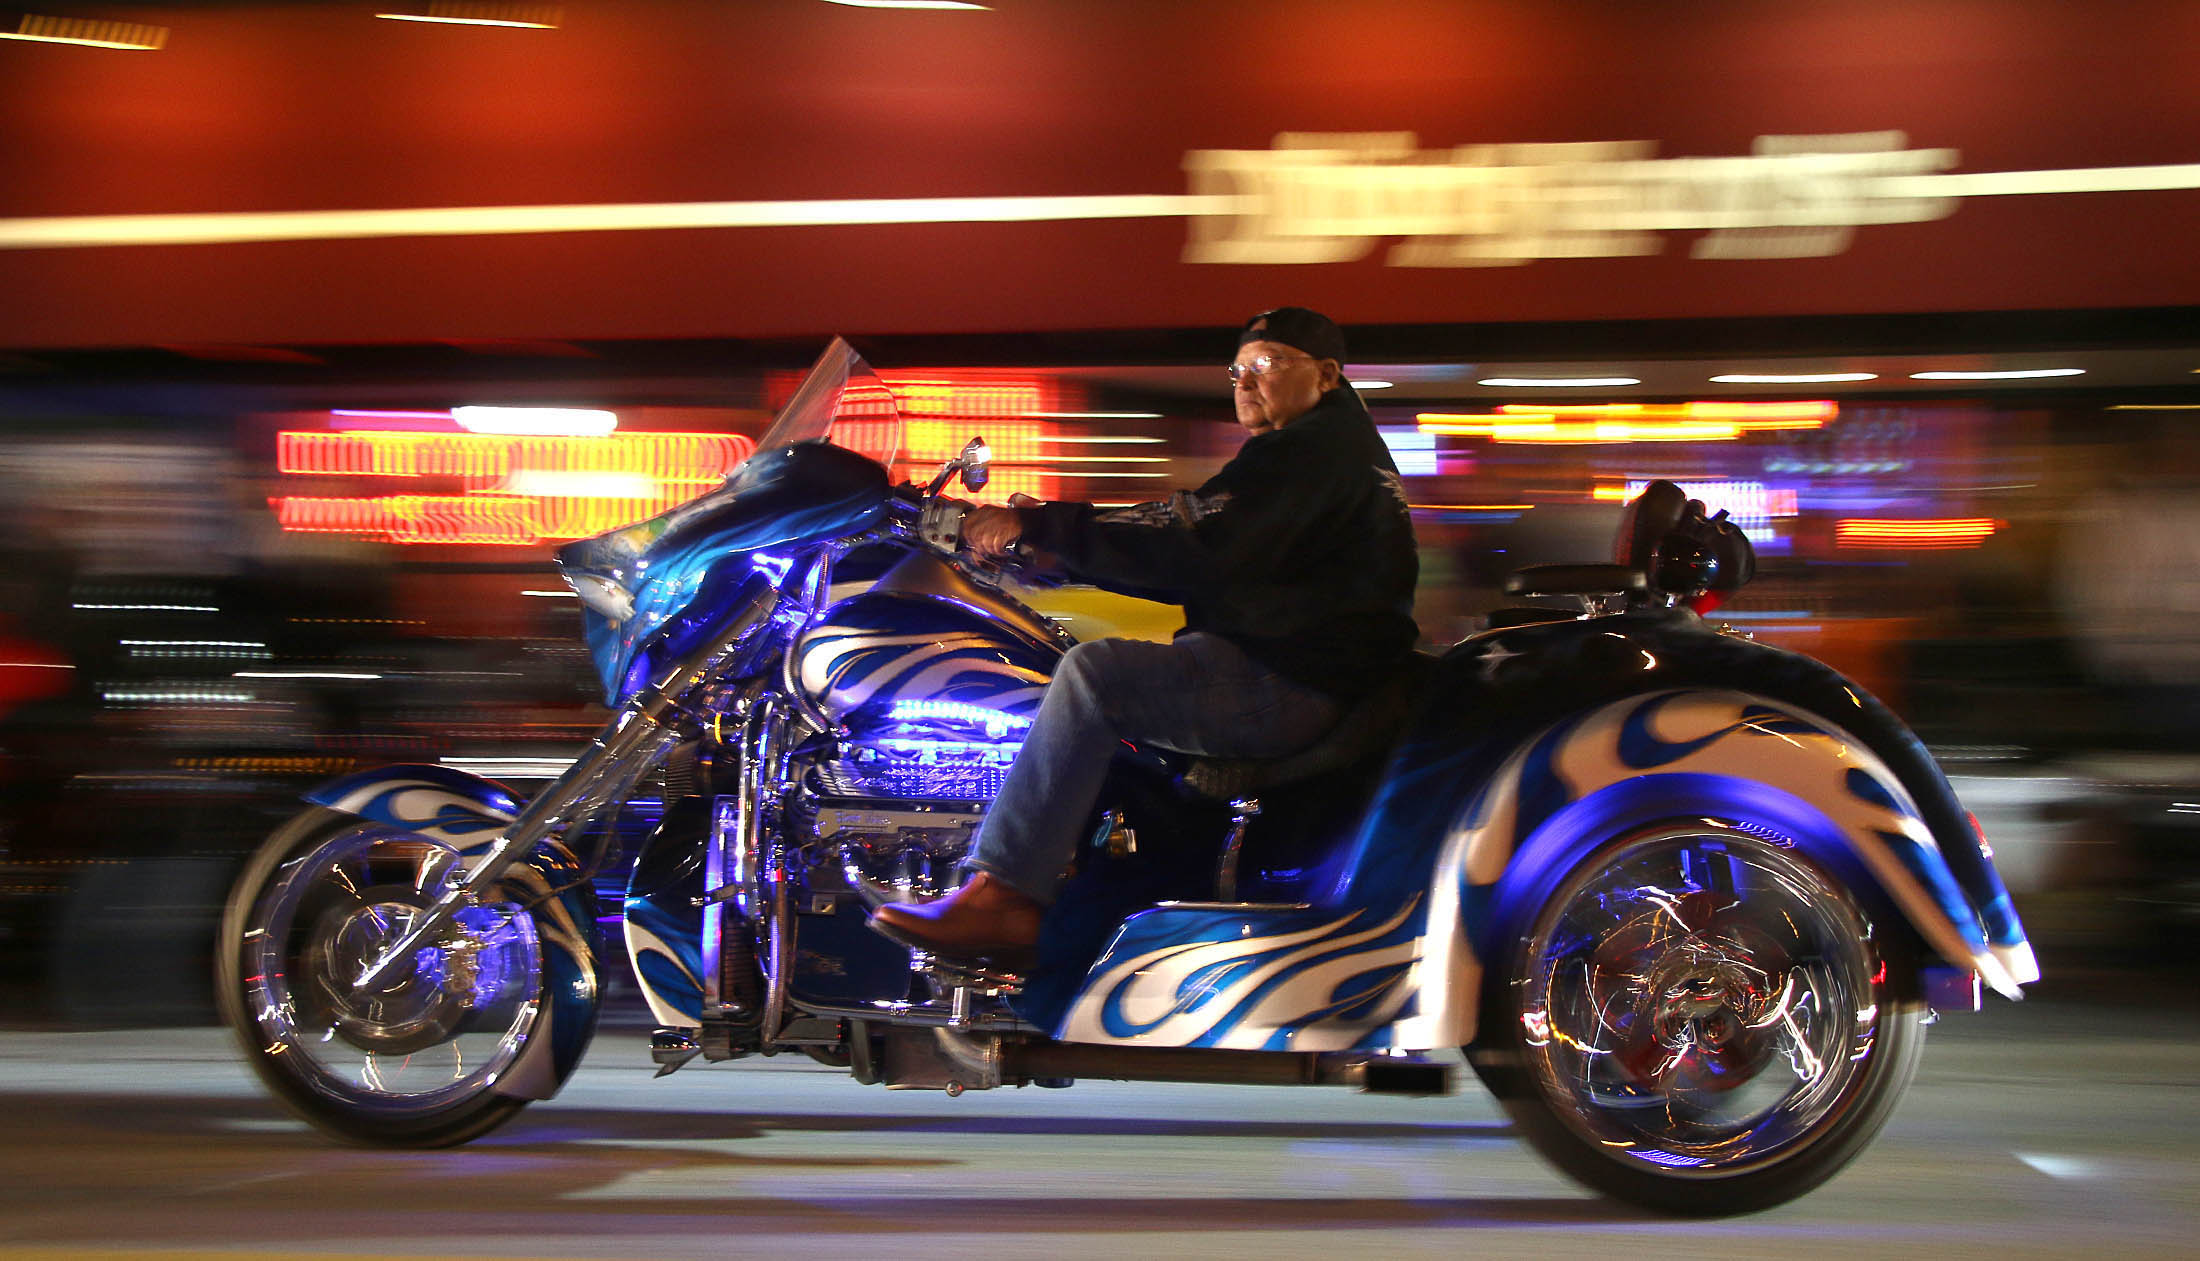 Night falls on the final weekend of Bike Week 2016 on Main Street after a week of perfect weather and record crowds Friday  night, March 11, 2016. News-Journal/JIM TILLER